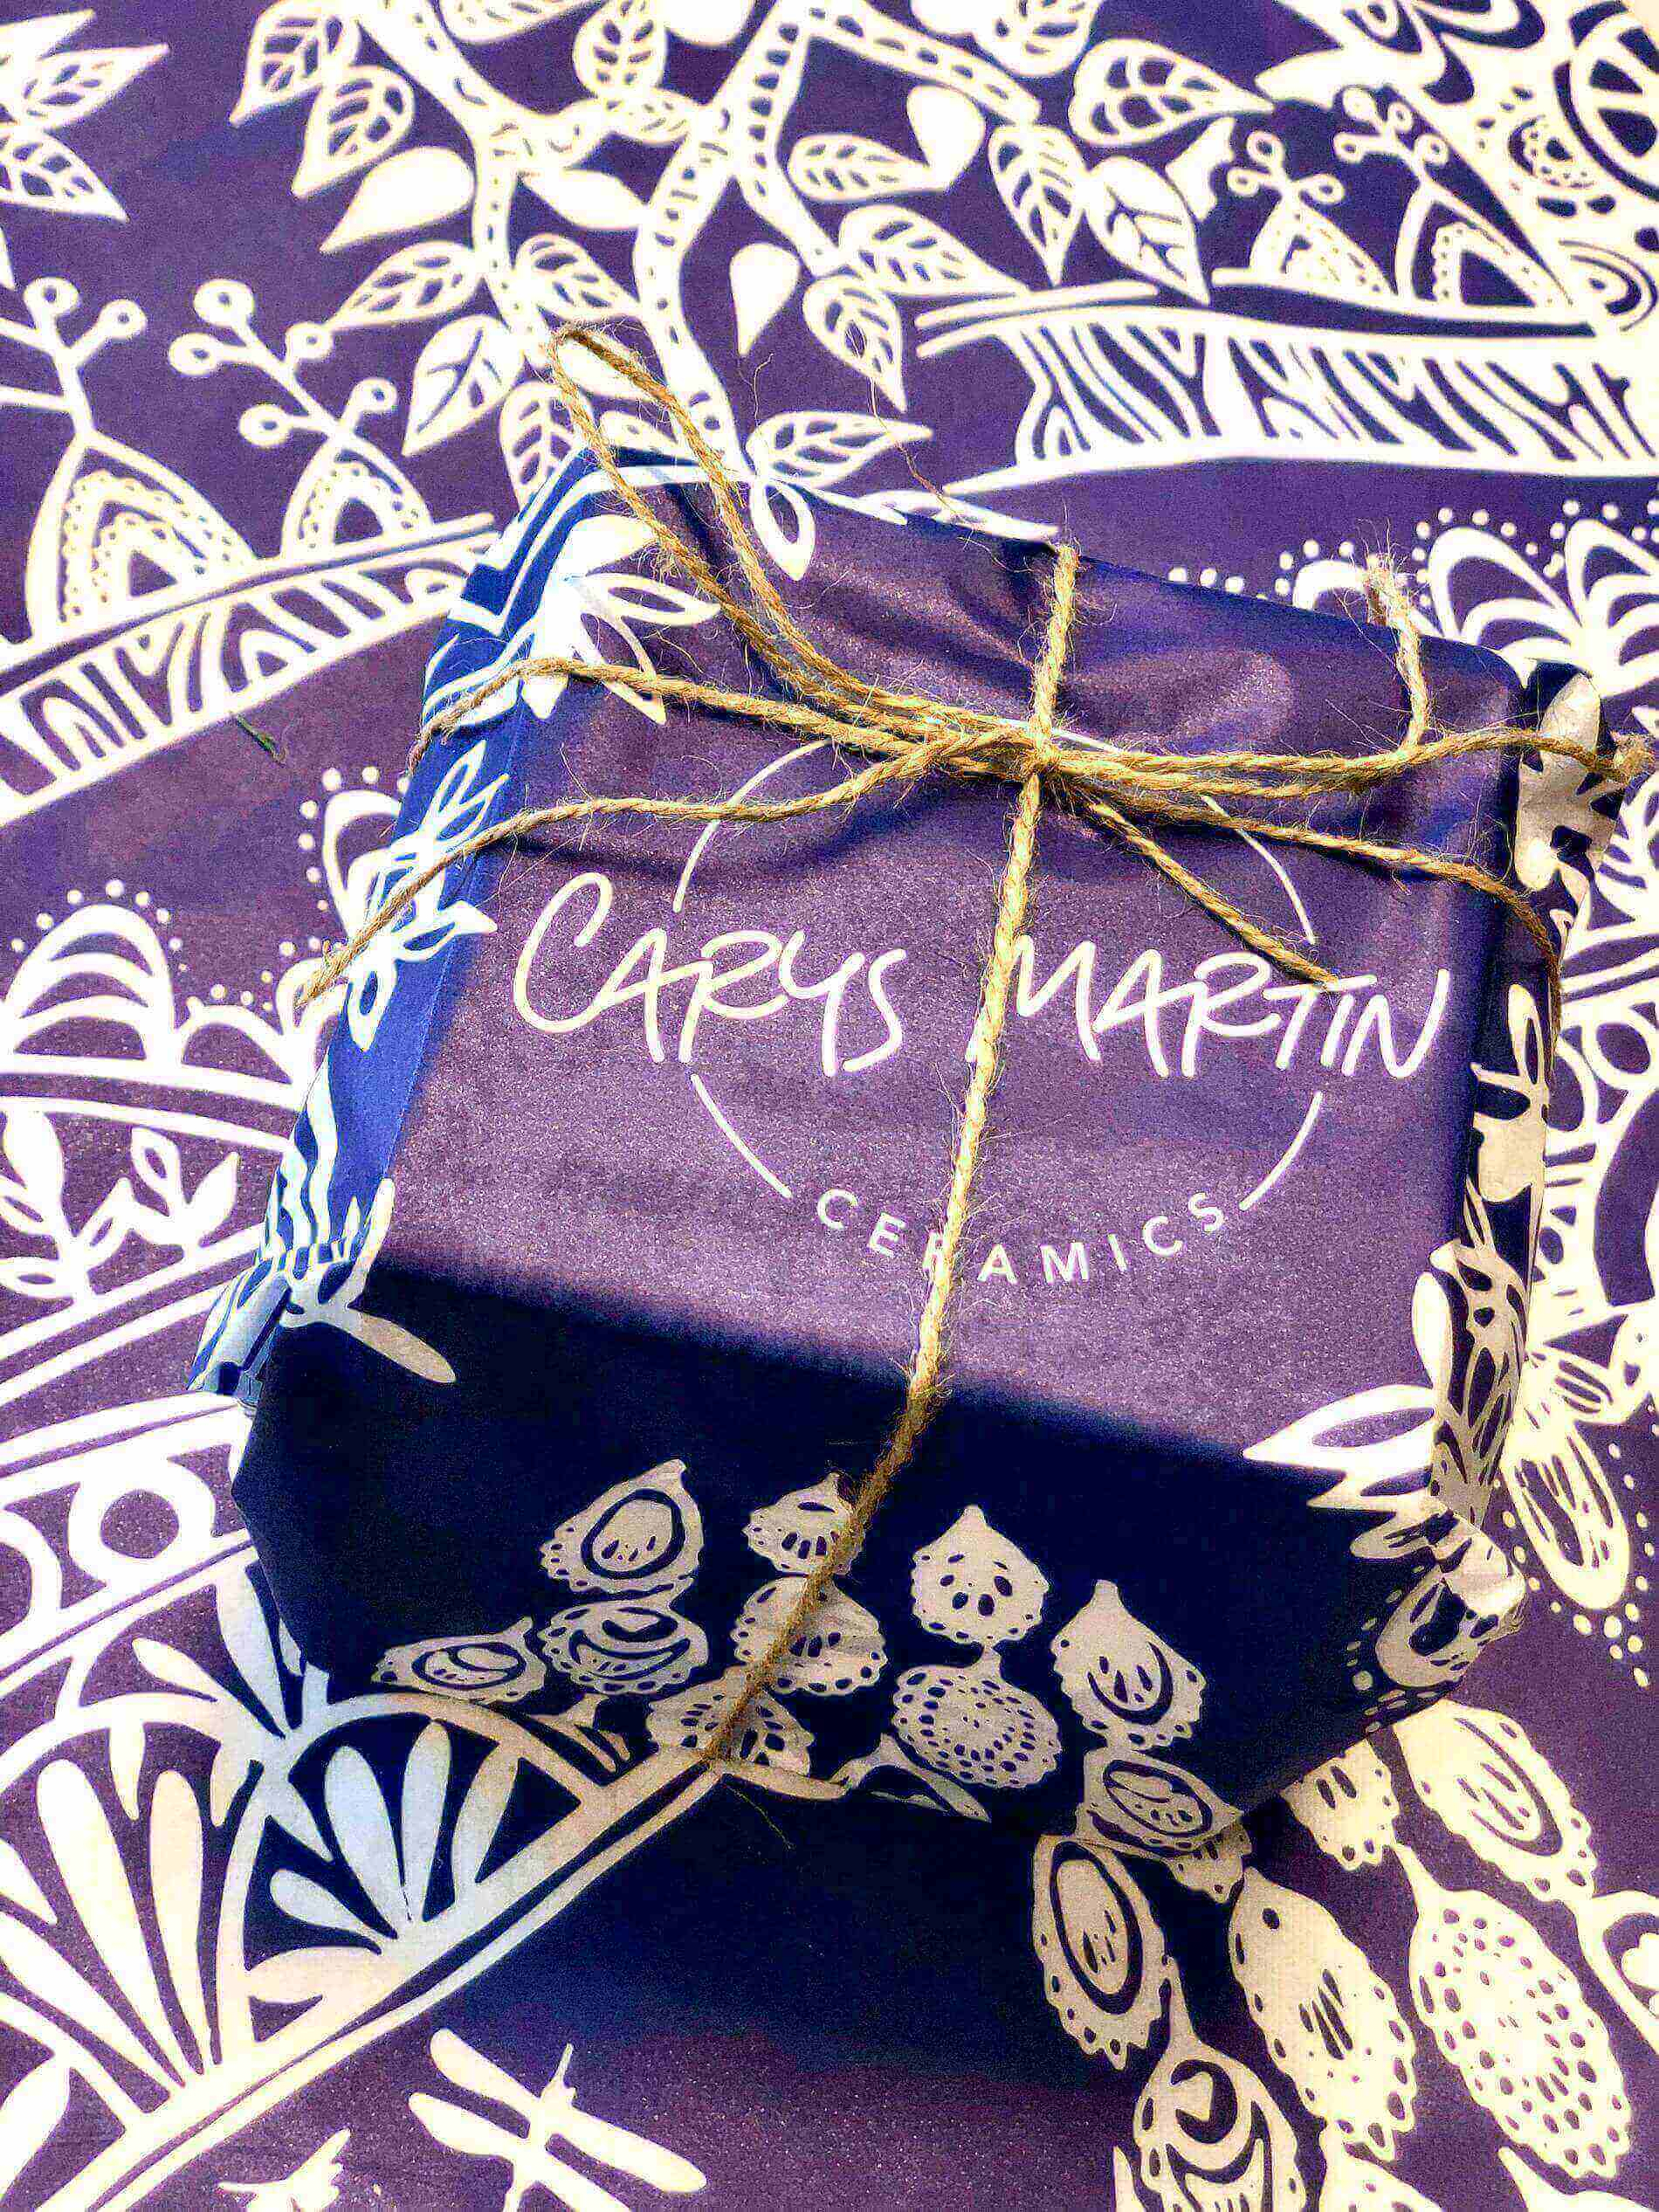 Package wrapped up in Carys Martin Ceramics branded tissue paper